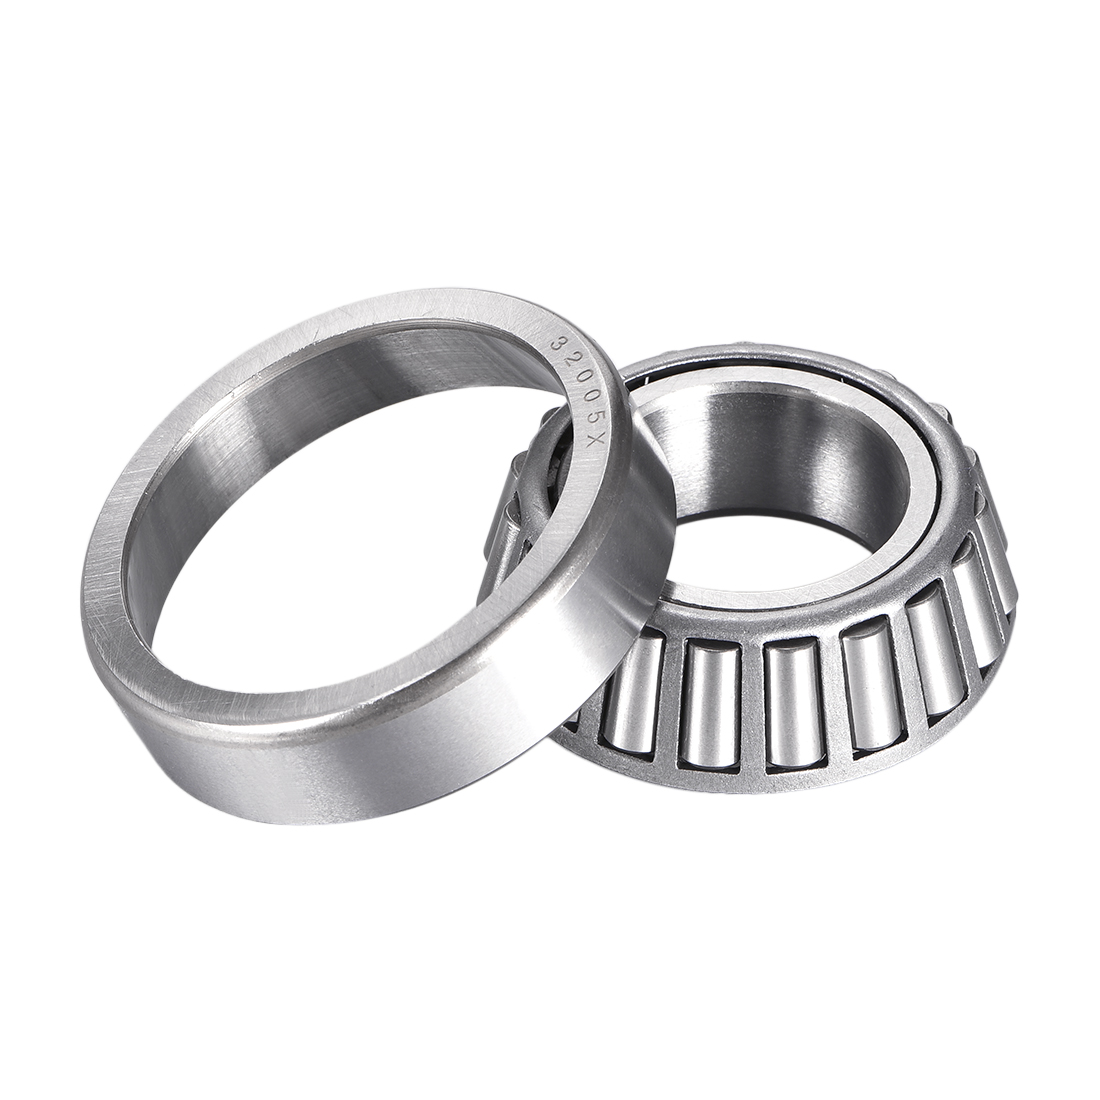 32005X Tapered Roller Bearing Cone with Cup, 25x14x15mm for Freight Trailer